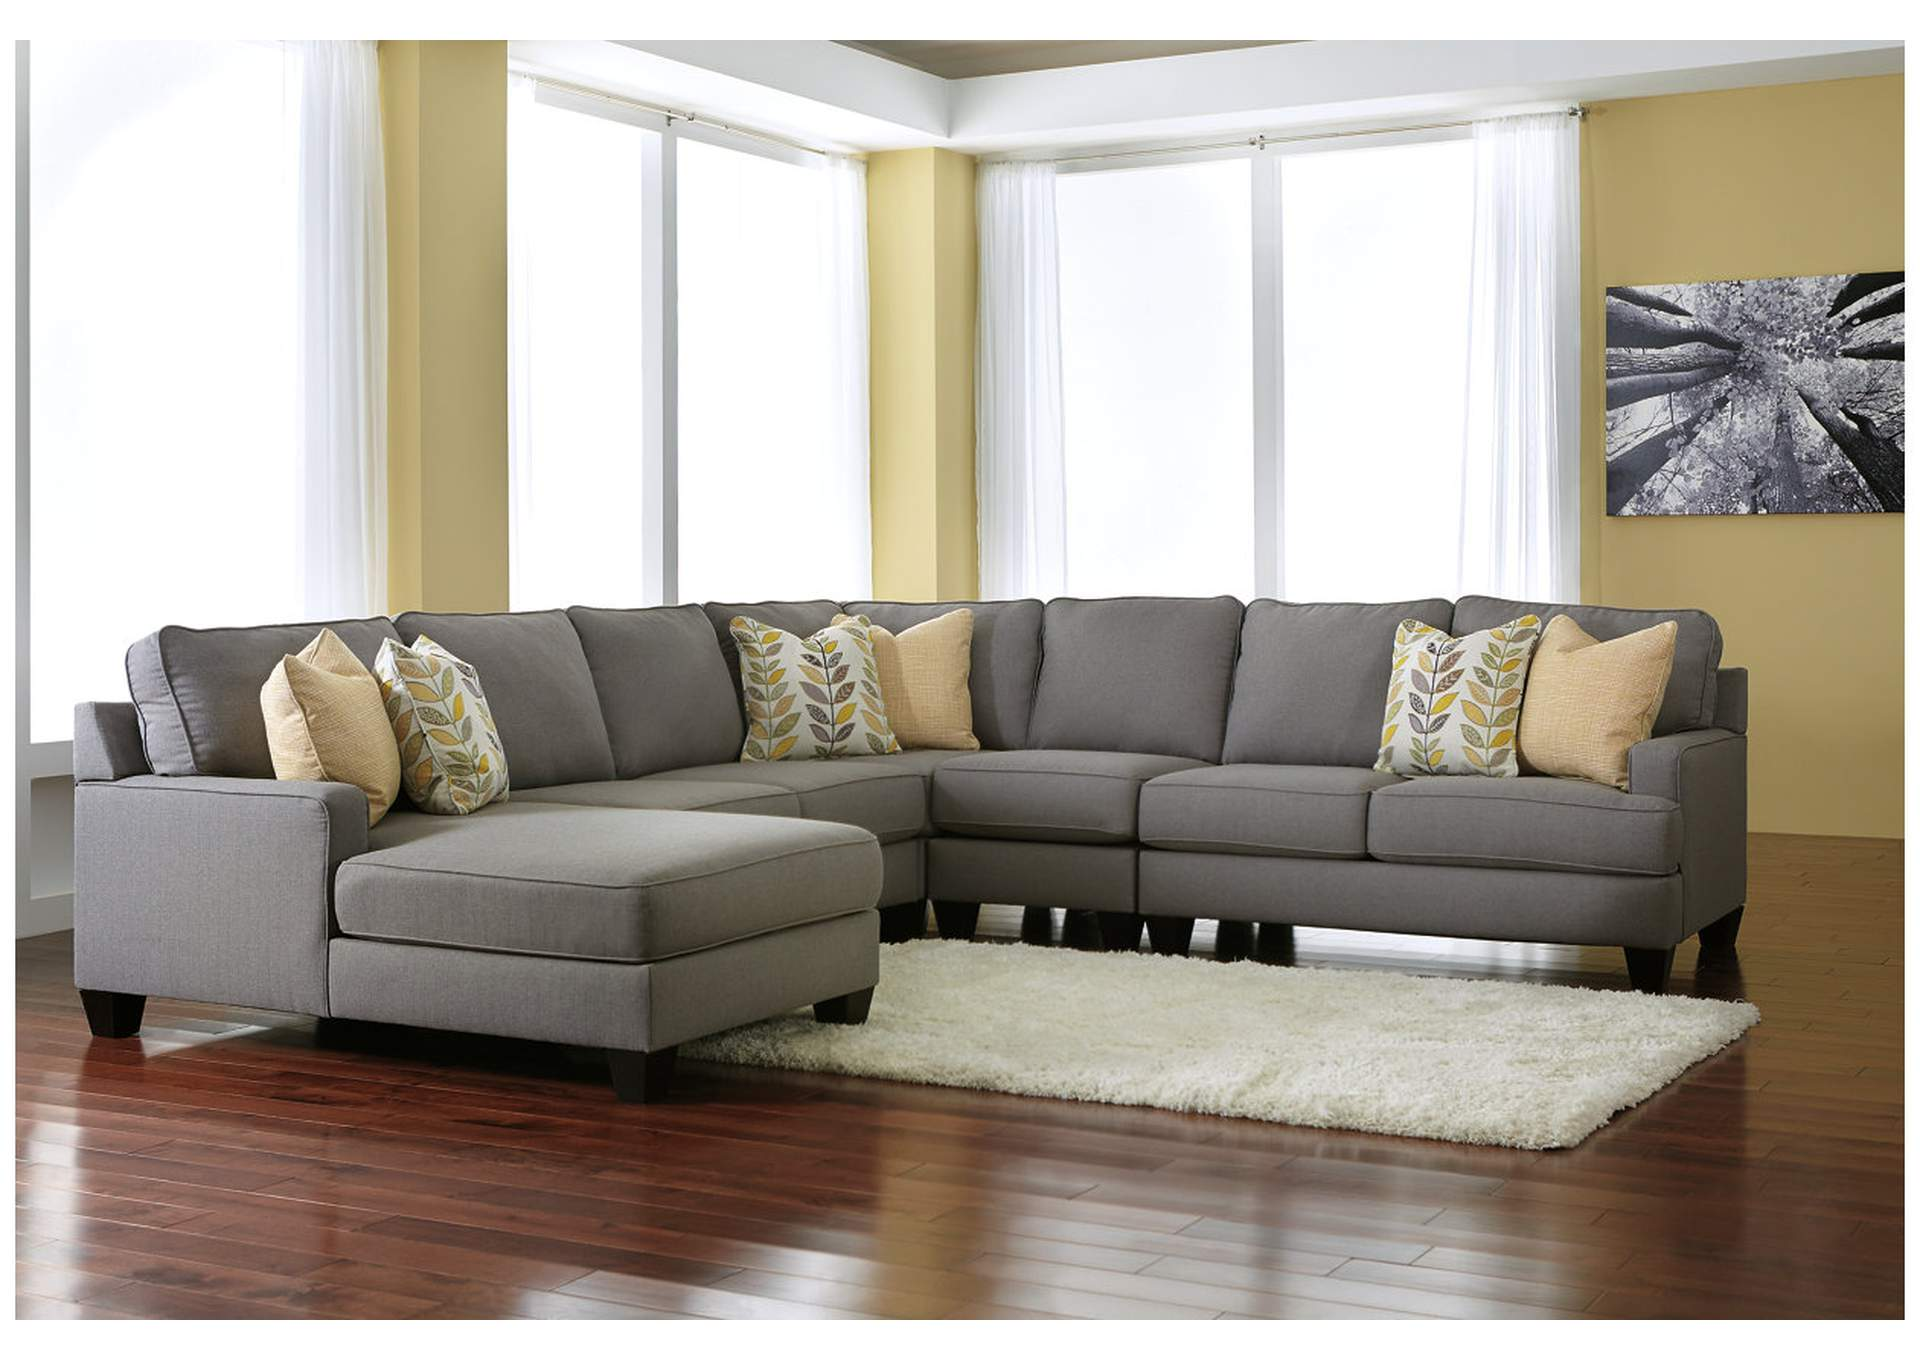 Rooms unlimited chamberly alloy left arm facing chaise end for Brown leather chaise end sofa